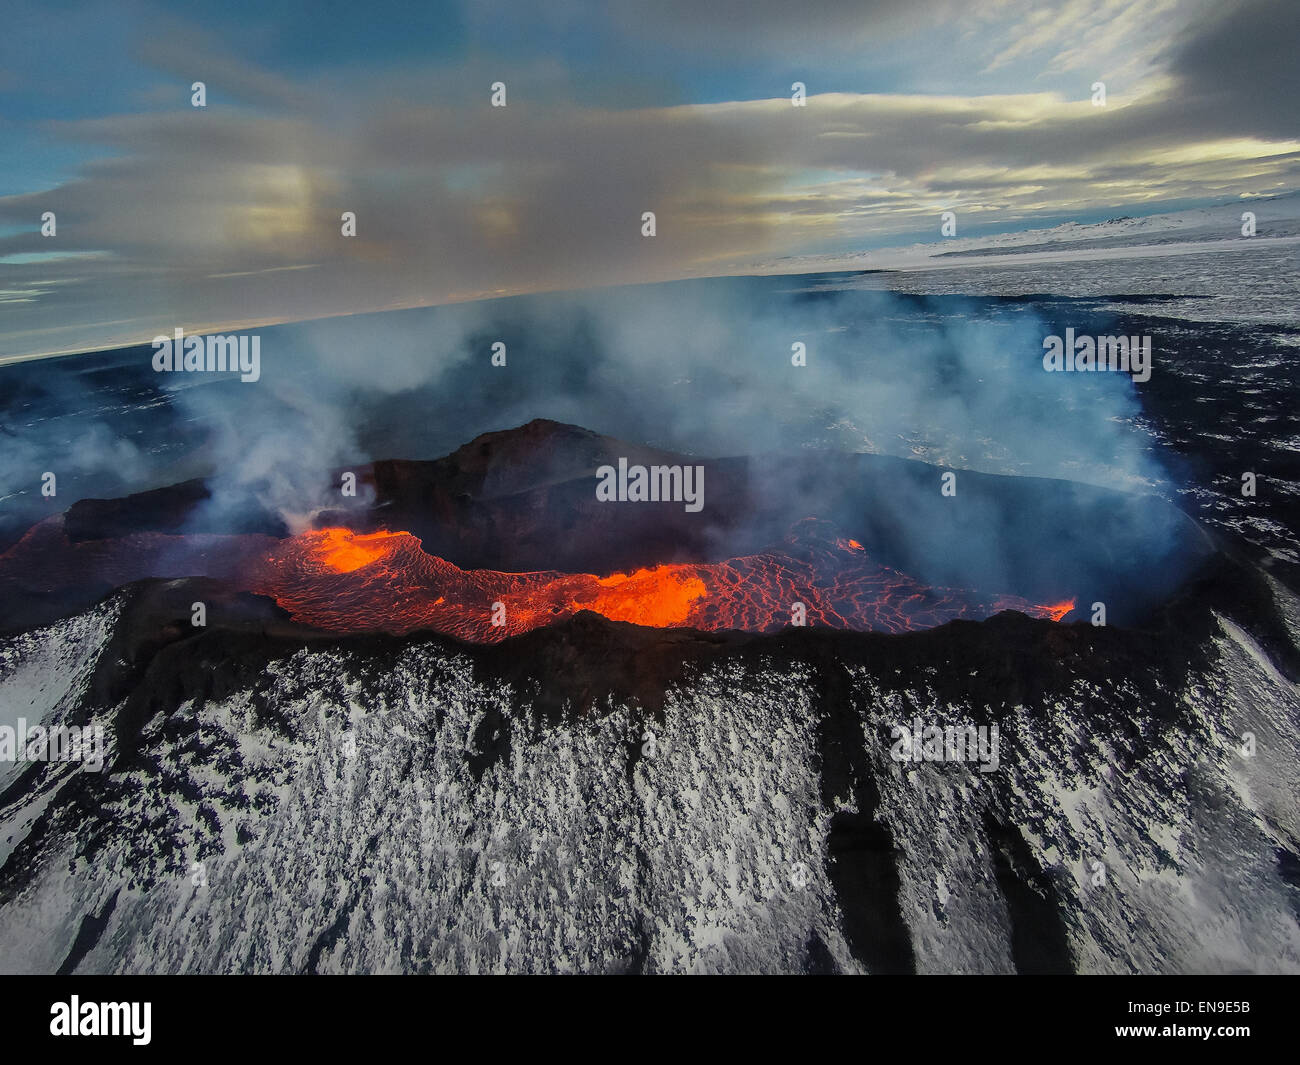 Volcano Eruption at the Holuhraun Fissure, Bardarbunga Volcano, Iceland. - Stock Image